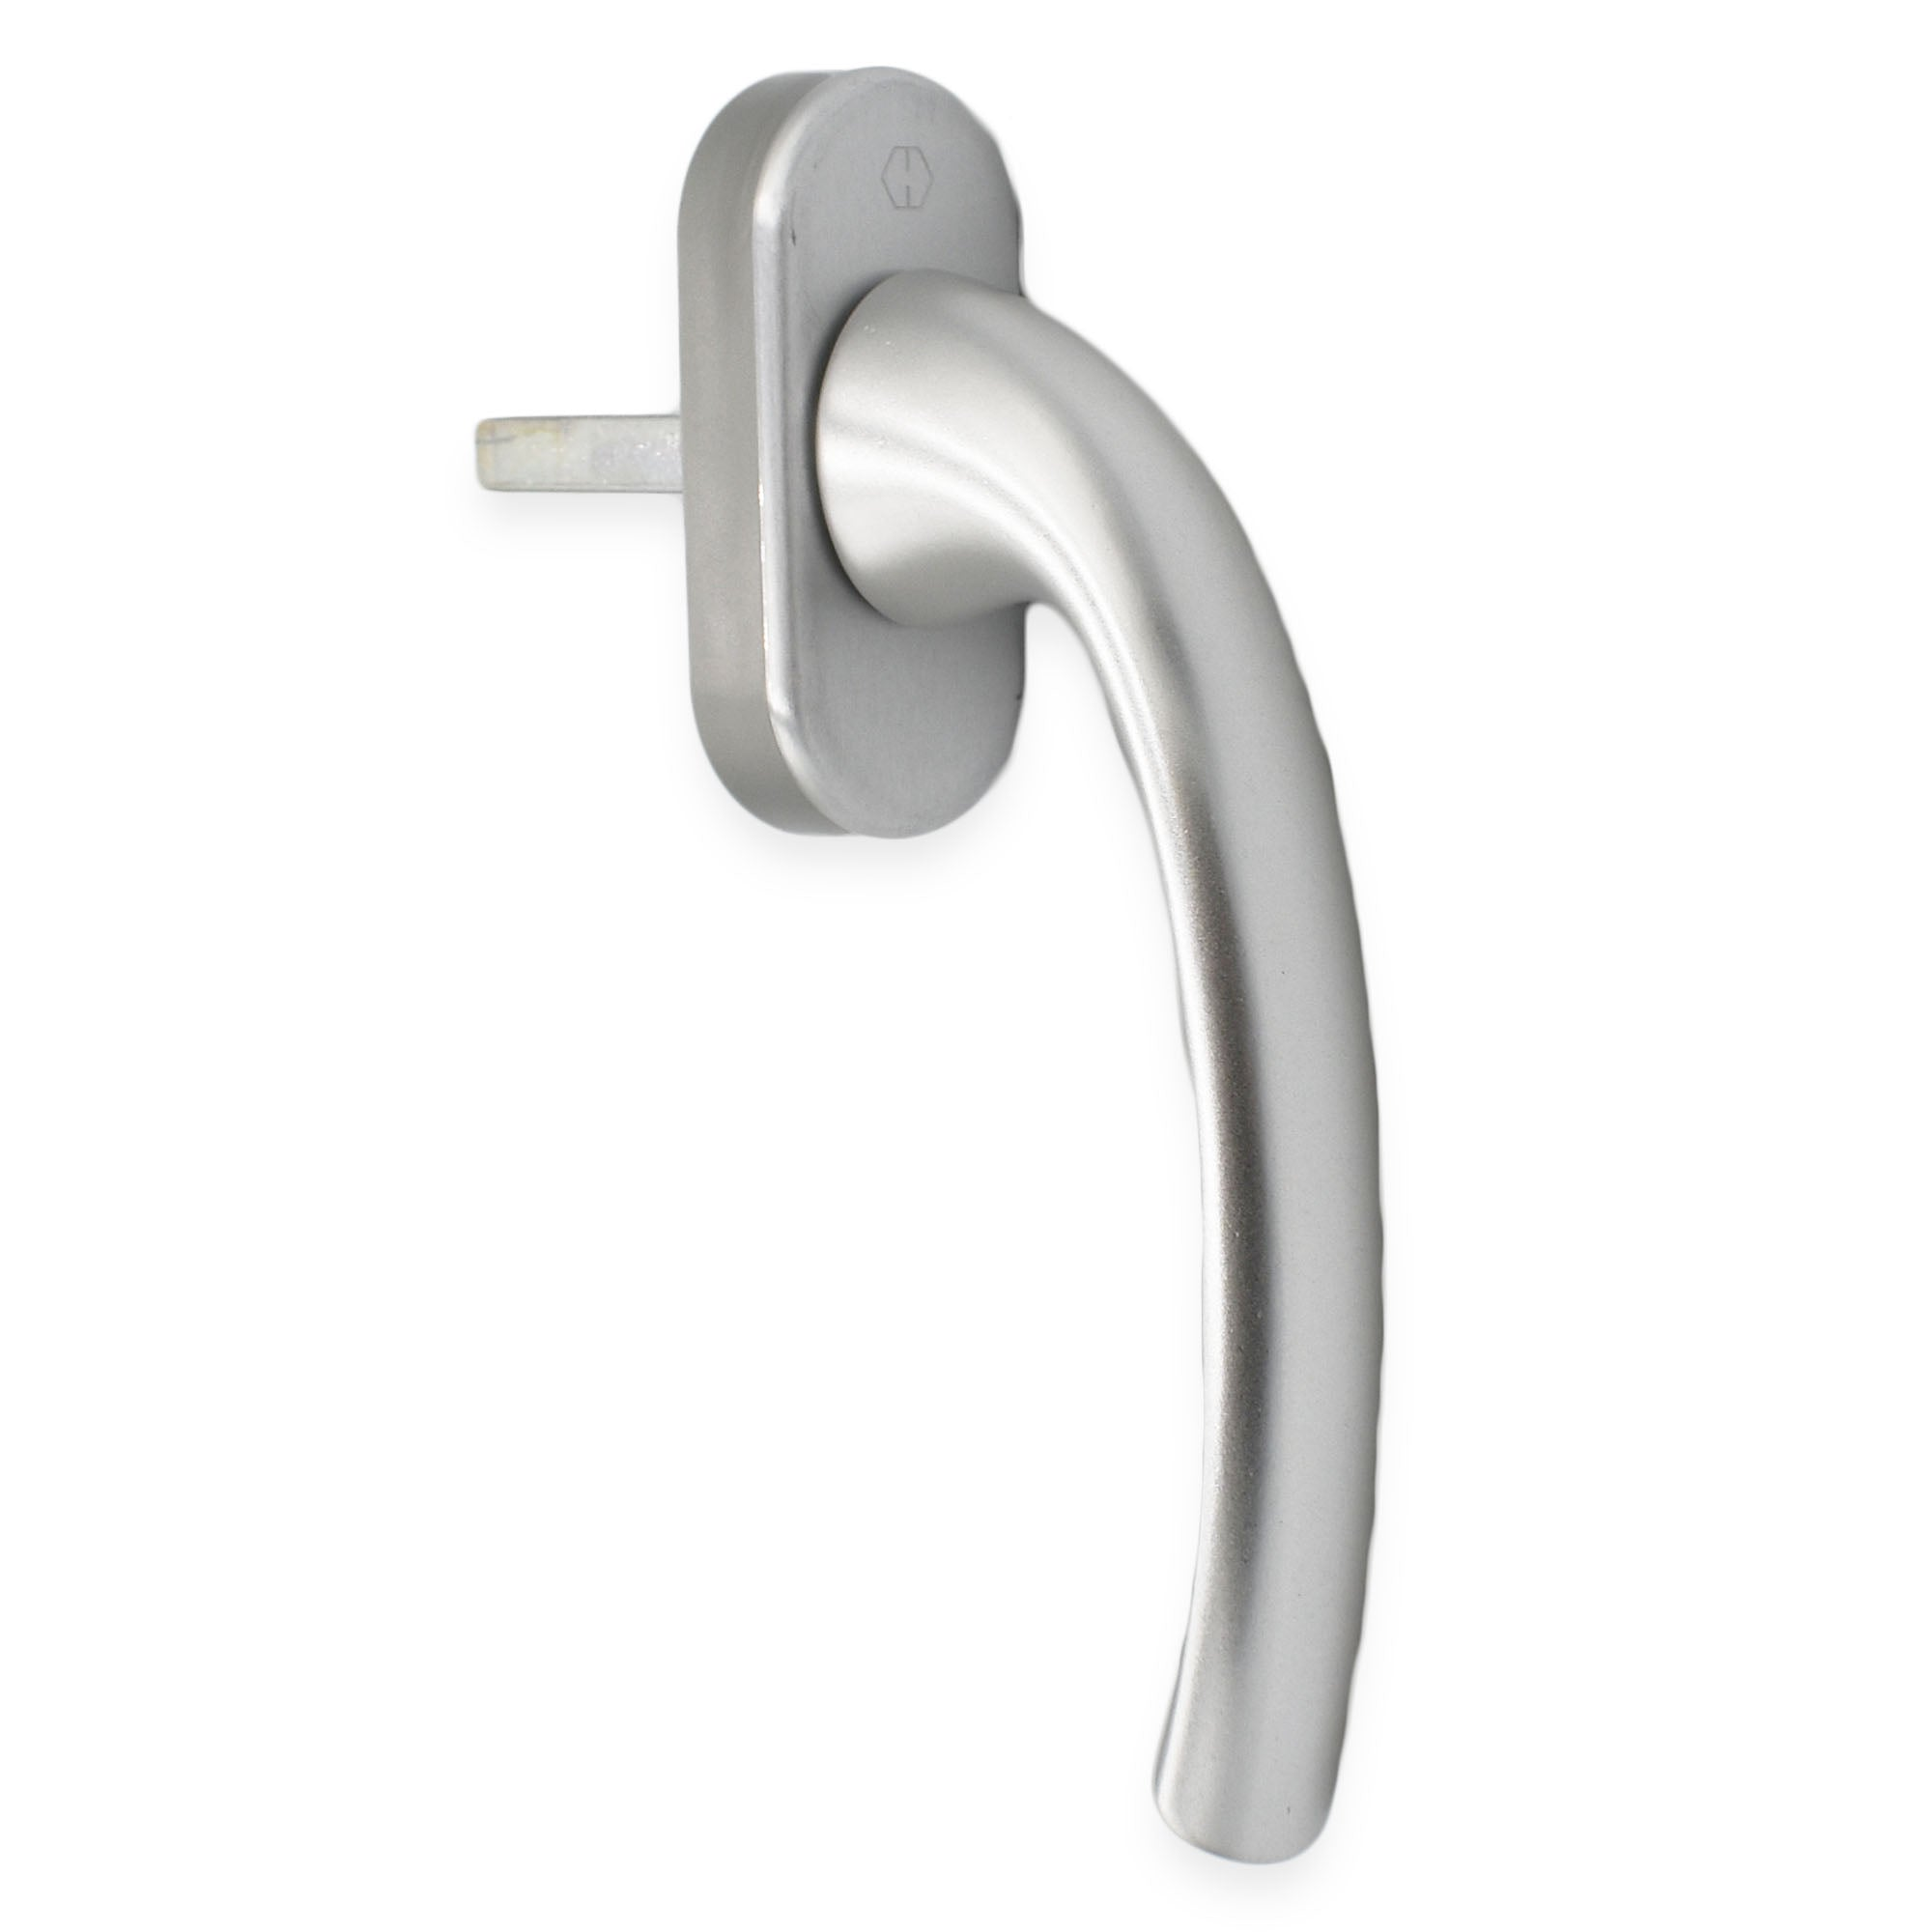 Hoppe Chrome Tilt and Turn Window Handle T & T Non Locking TBT UPVC & Timber Windows -  - Hoppe - UPVCSTORE